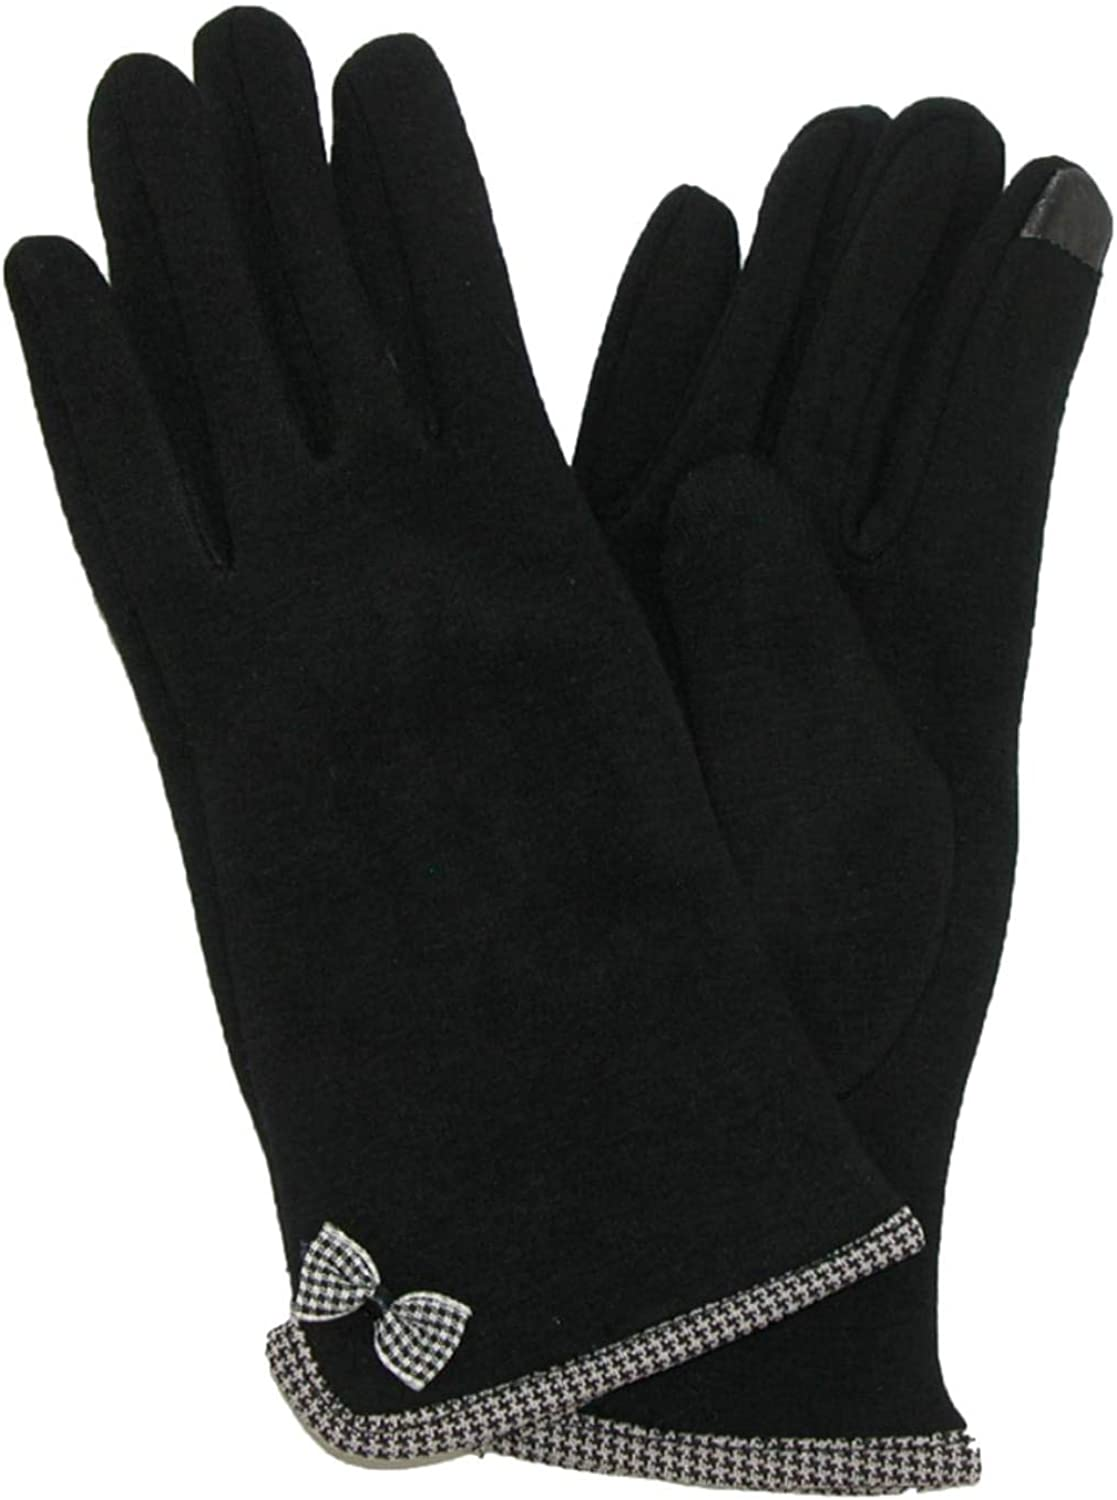 Womens Black & Houndstooth Bow Stretch Fit Texting & Tech Touchscreen Gloves